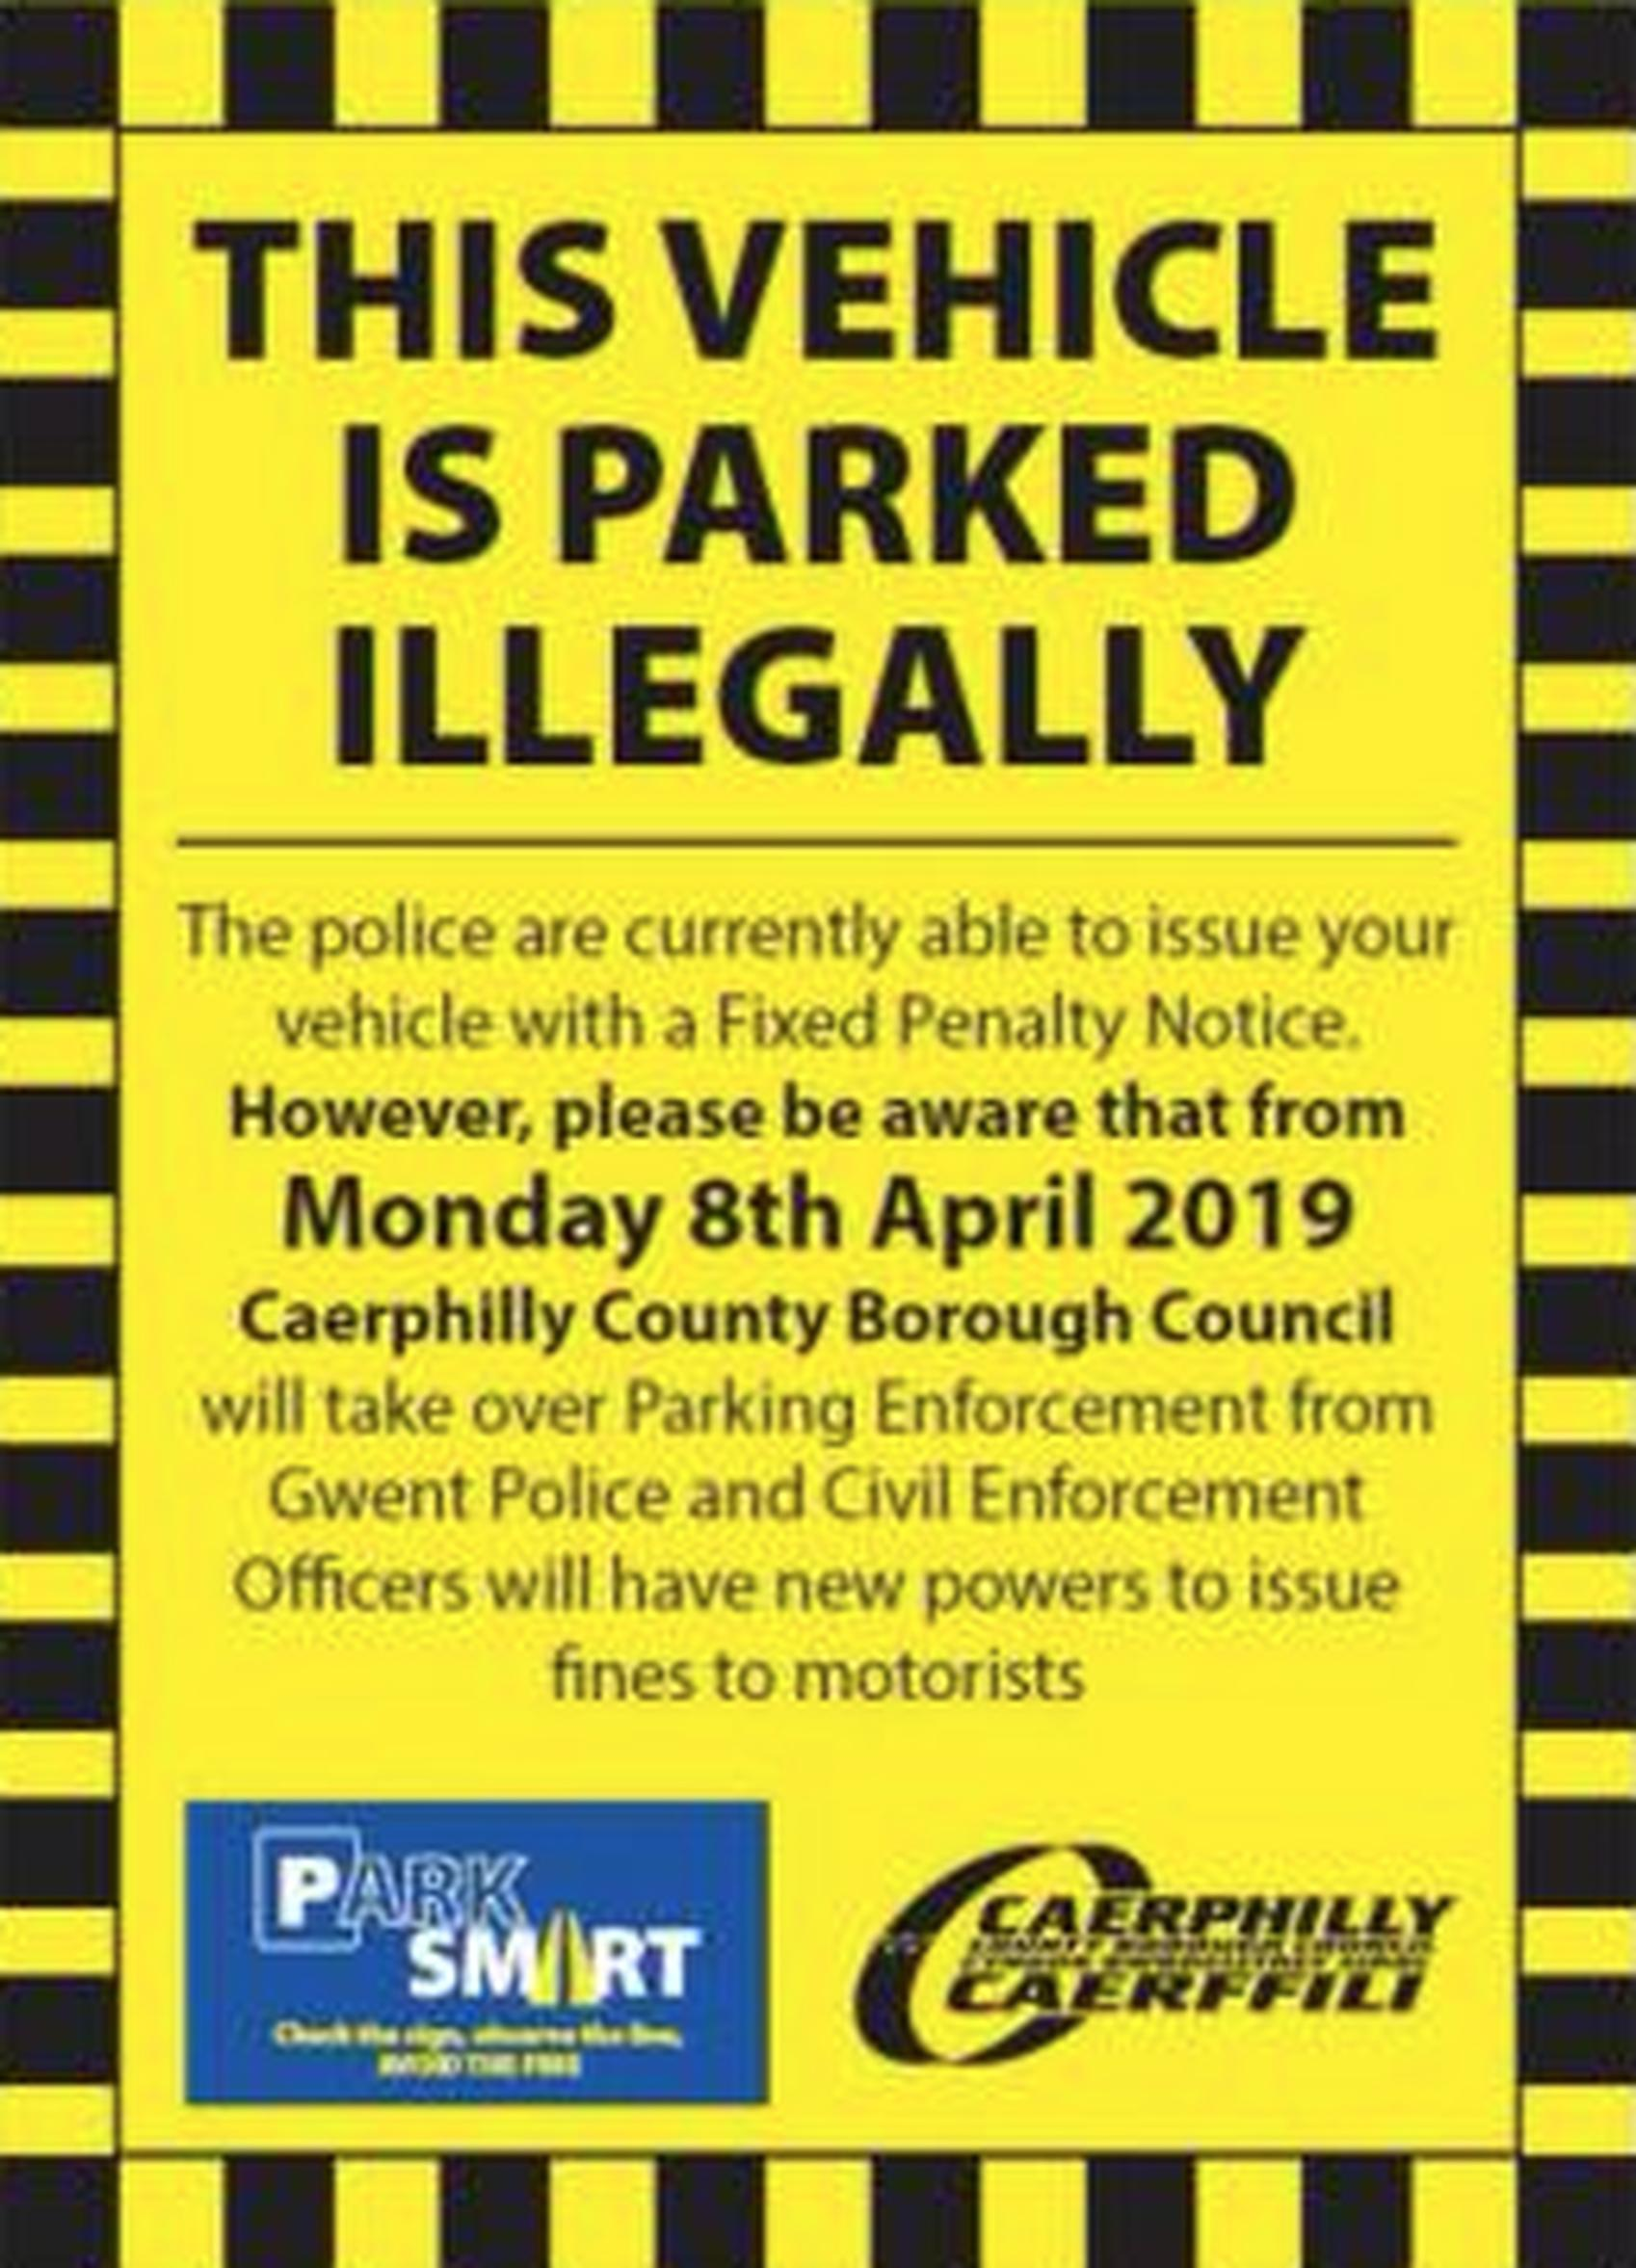 From now on, park carefully in Caerphilly